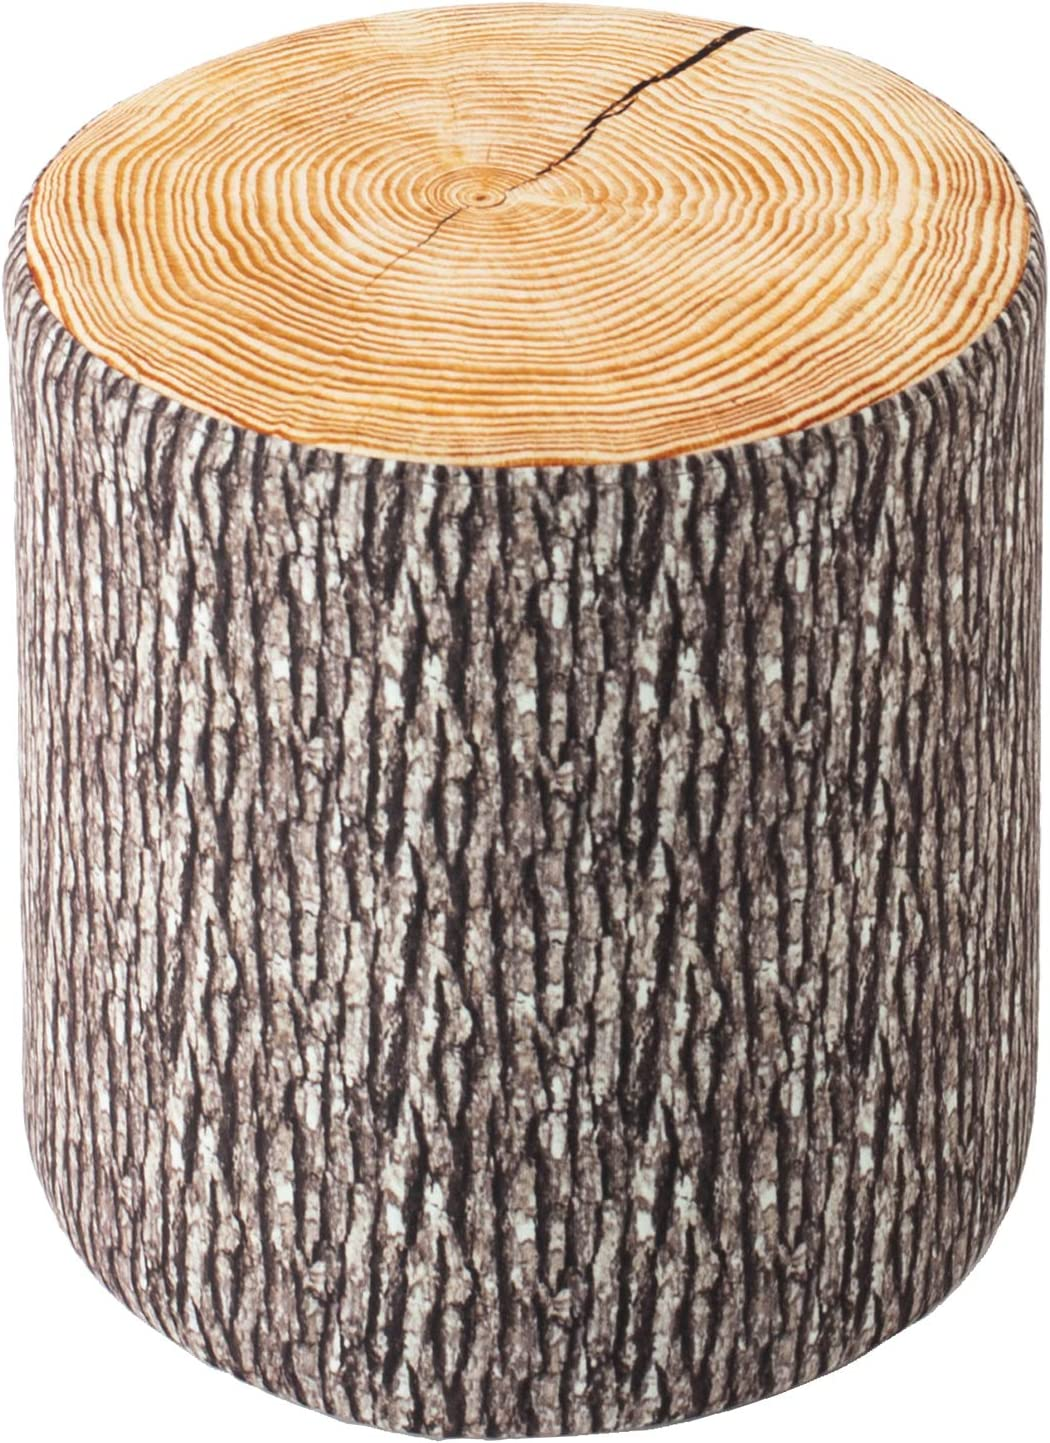 Guidecraft Soft Log Stool: Upholstered Kids Footrest, Ottoman, Stump or Chair - Themed Children Playroom or Classroom Furniture